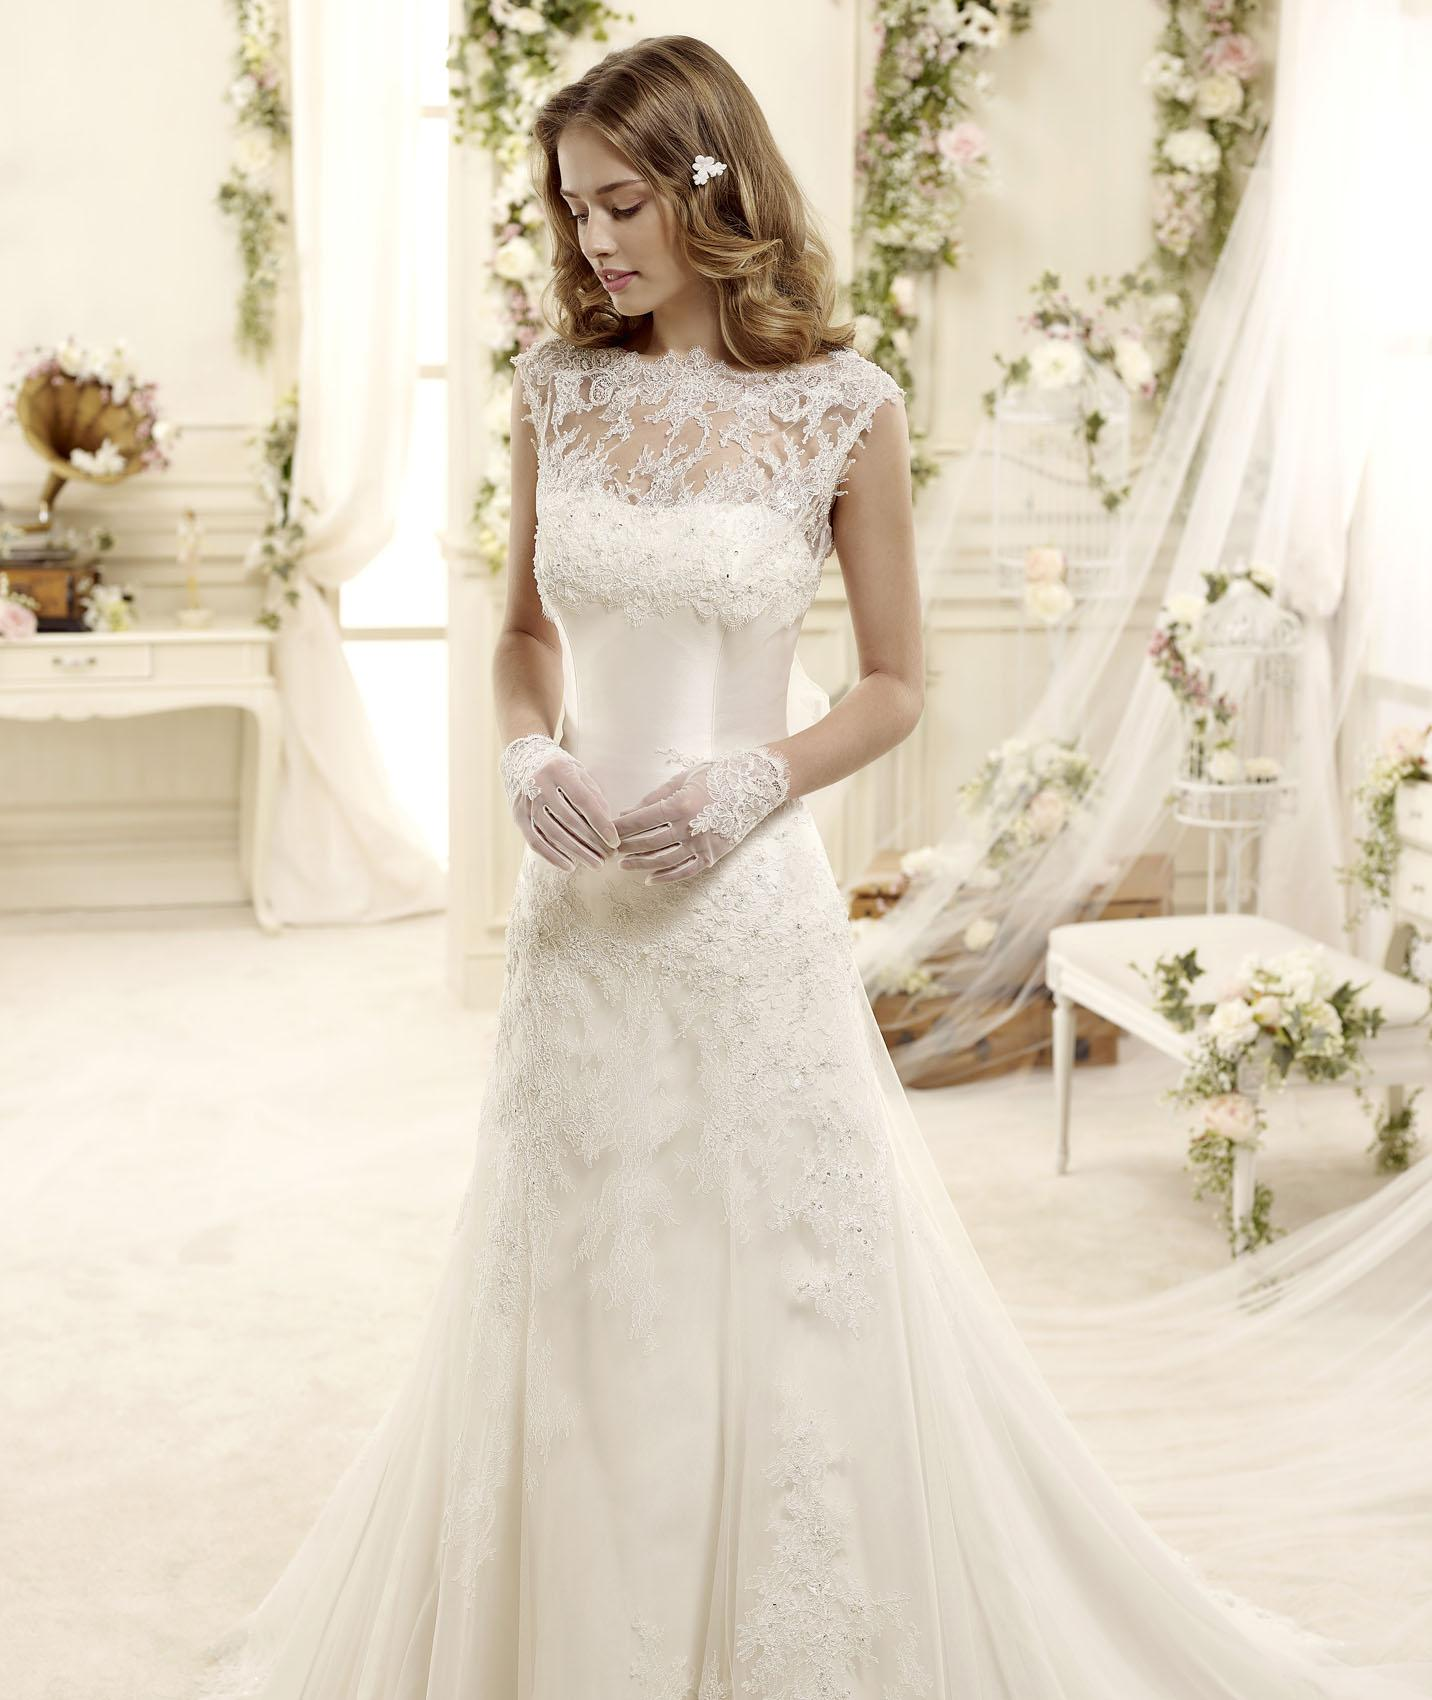 http://www.aislestyle.co.uk/elegant-aline-illusion-neck-beadingampcrystal-lace-sweepbrush-train-wedding-dresses-p-2934.html